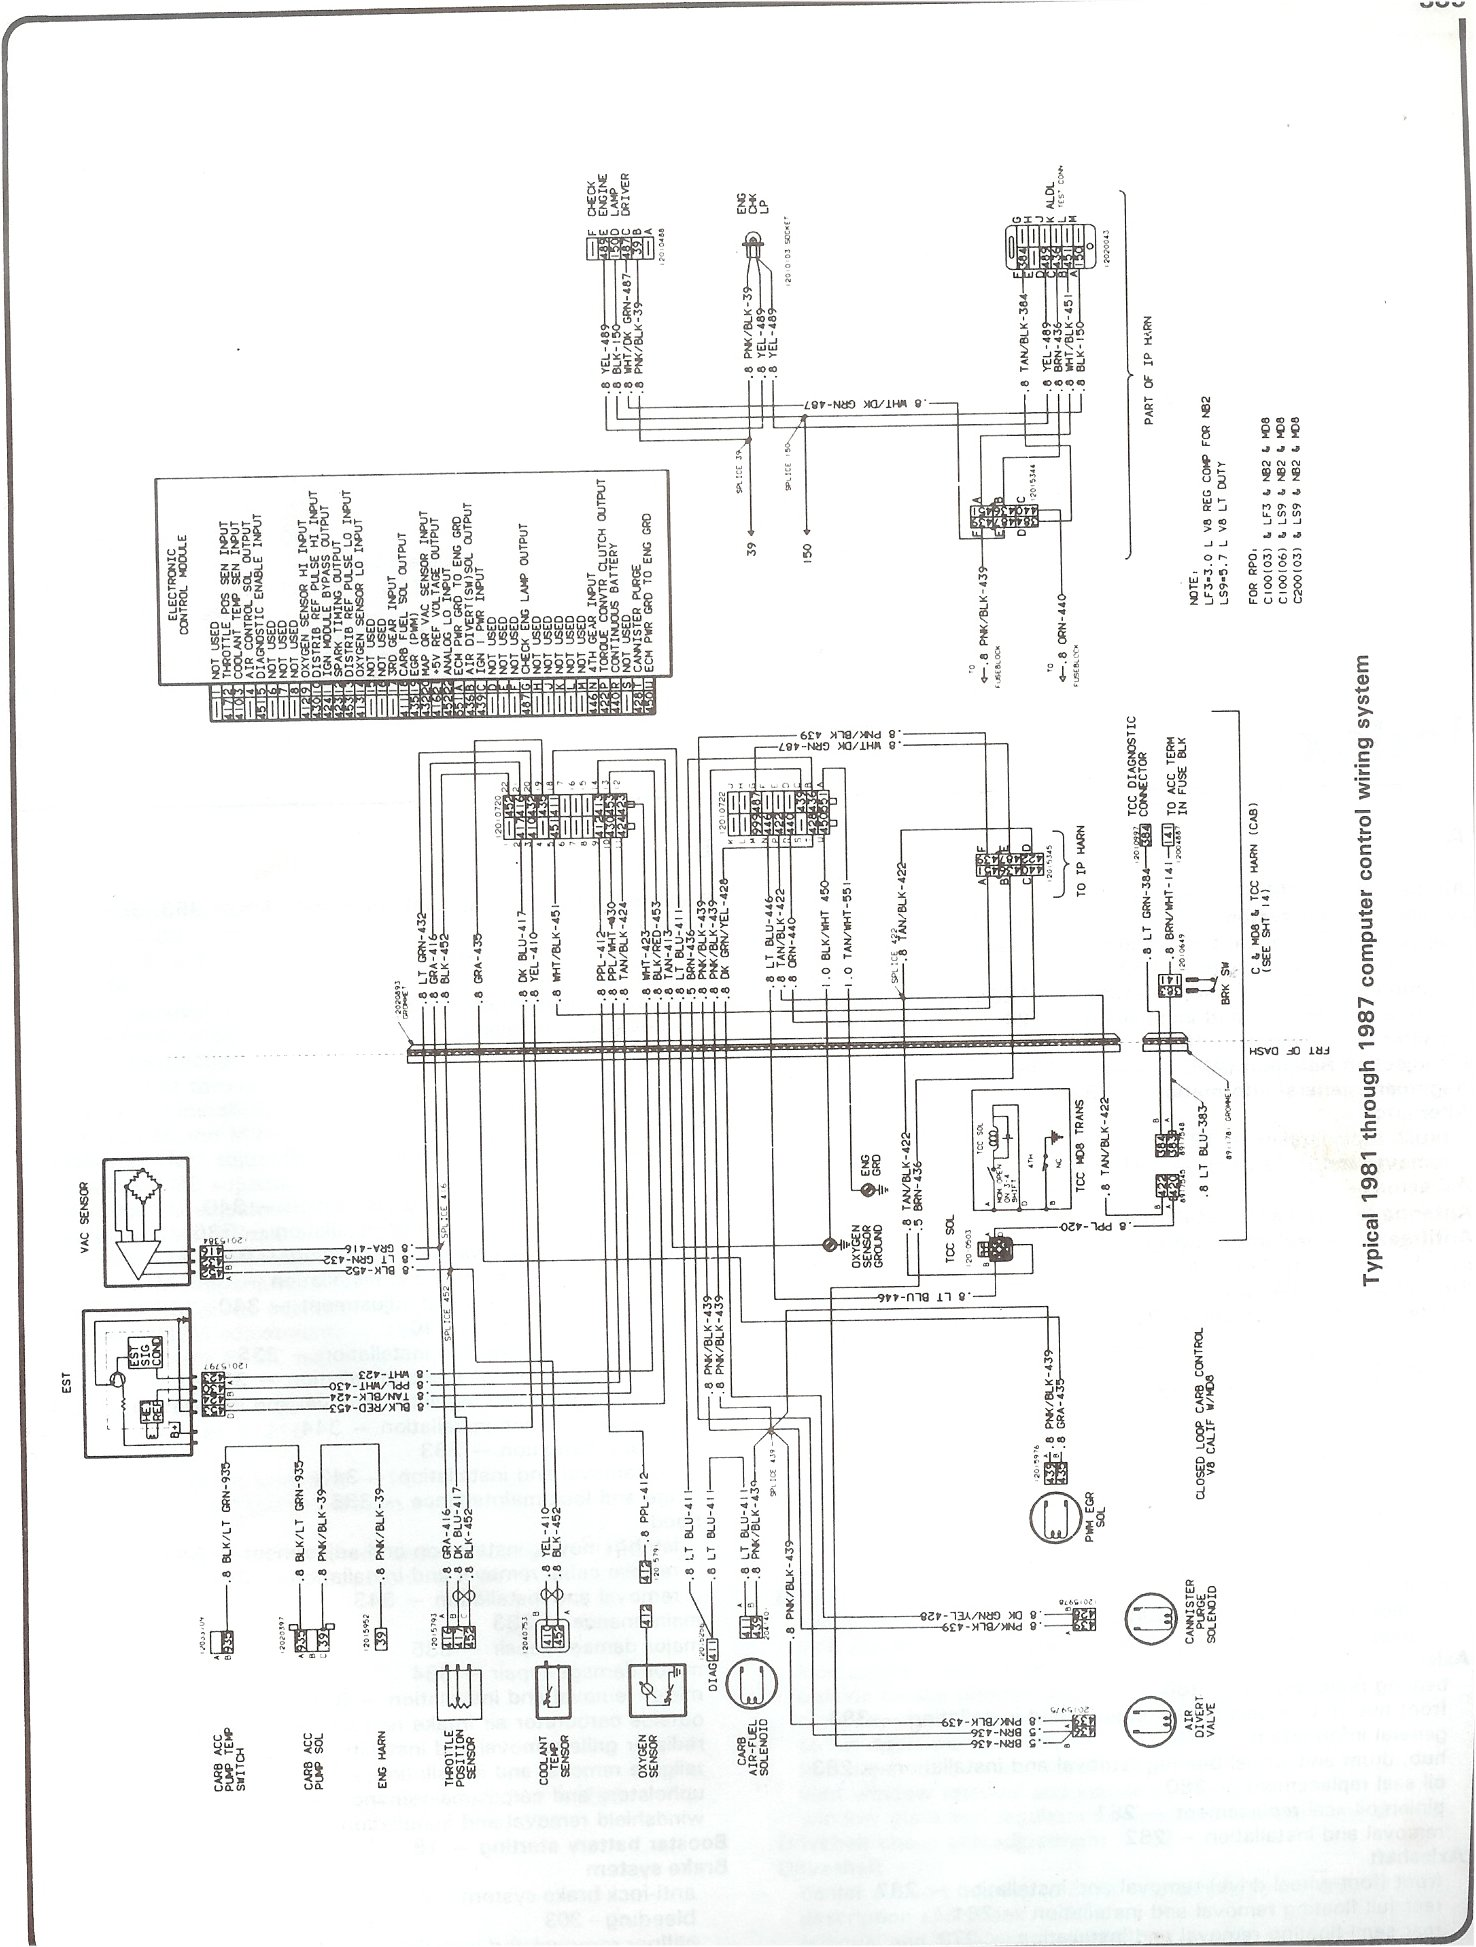 79 Camaro Wiring Schematic Library. Plete 73 87 Wiring Diagrams 76 Chevy Truck Diagram 79. Wiring. 76 Camaro Wiring Diagram At Scoala.co